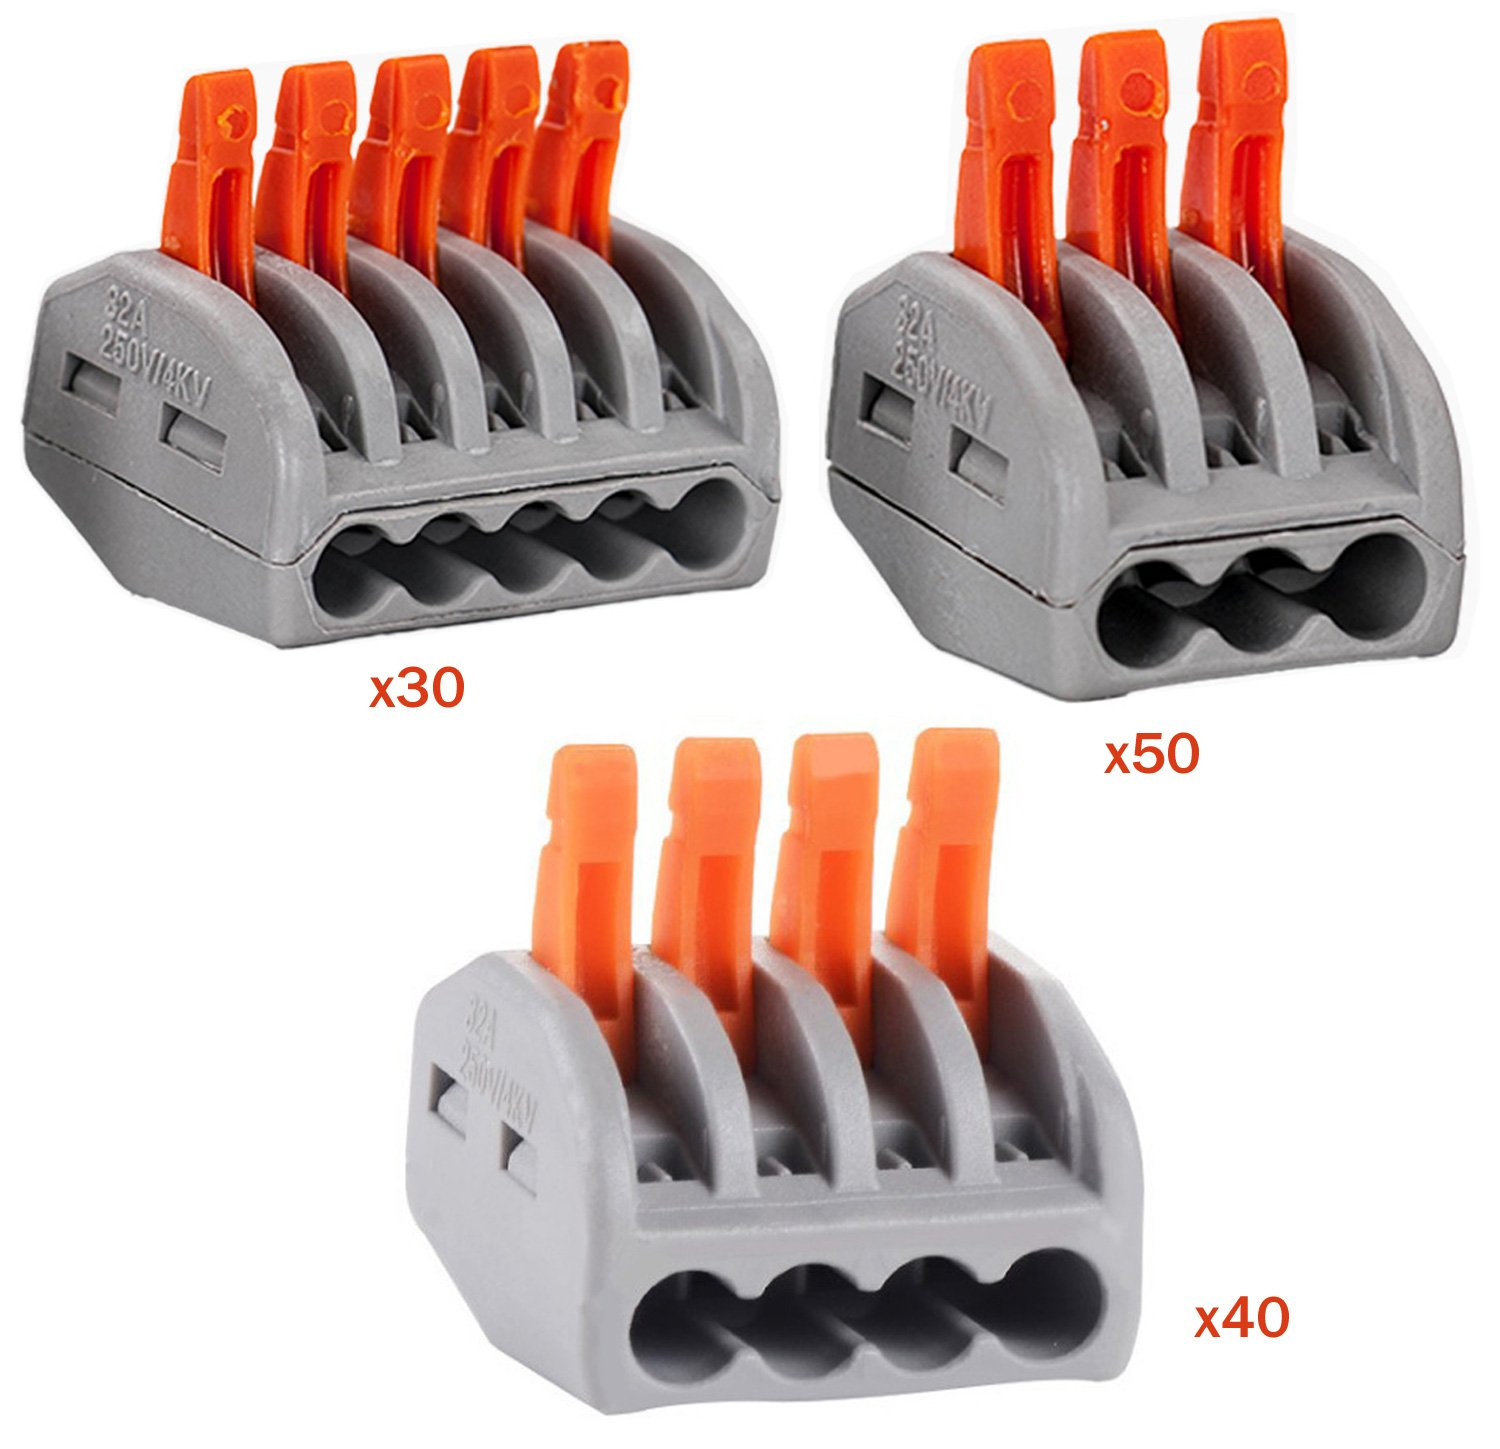 HIFROM Wire Compact Connectors 3 4 5 Port Lever-Nut Lever Conductor PCT-213 PCT-214 PCT-215 Terminal Block Wire Push Cable Connector for Junction Box Assortment Pack (120 PCS)